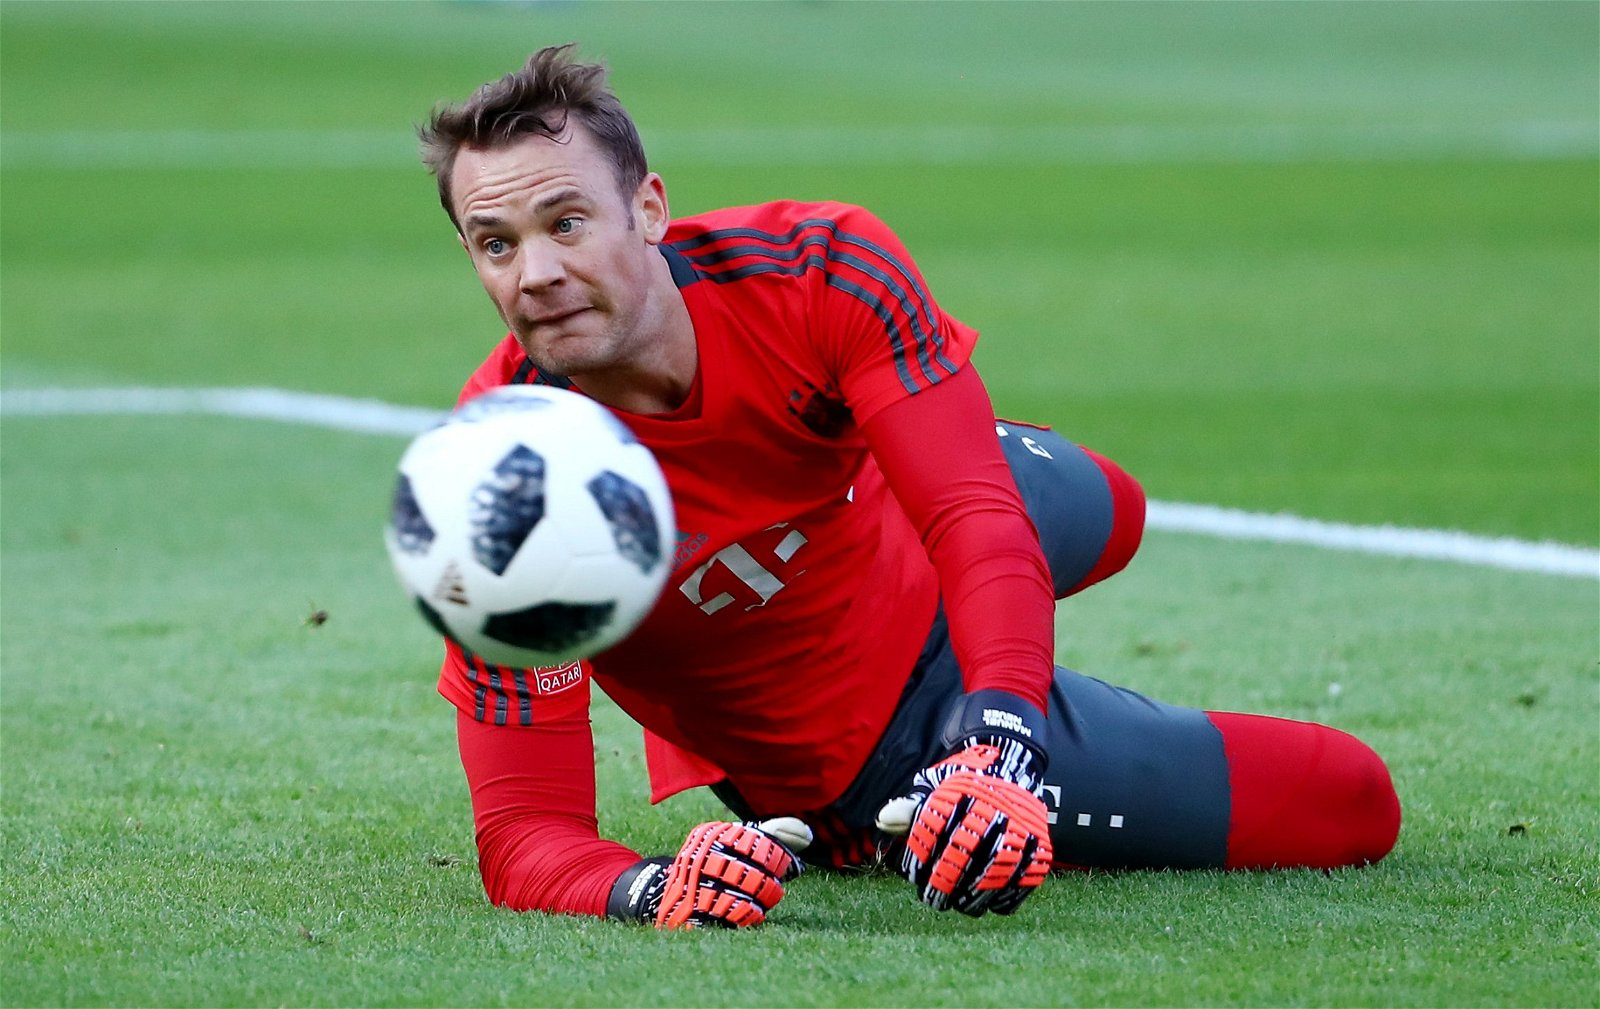 Manuel Neuer practices saves in training